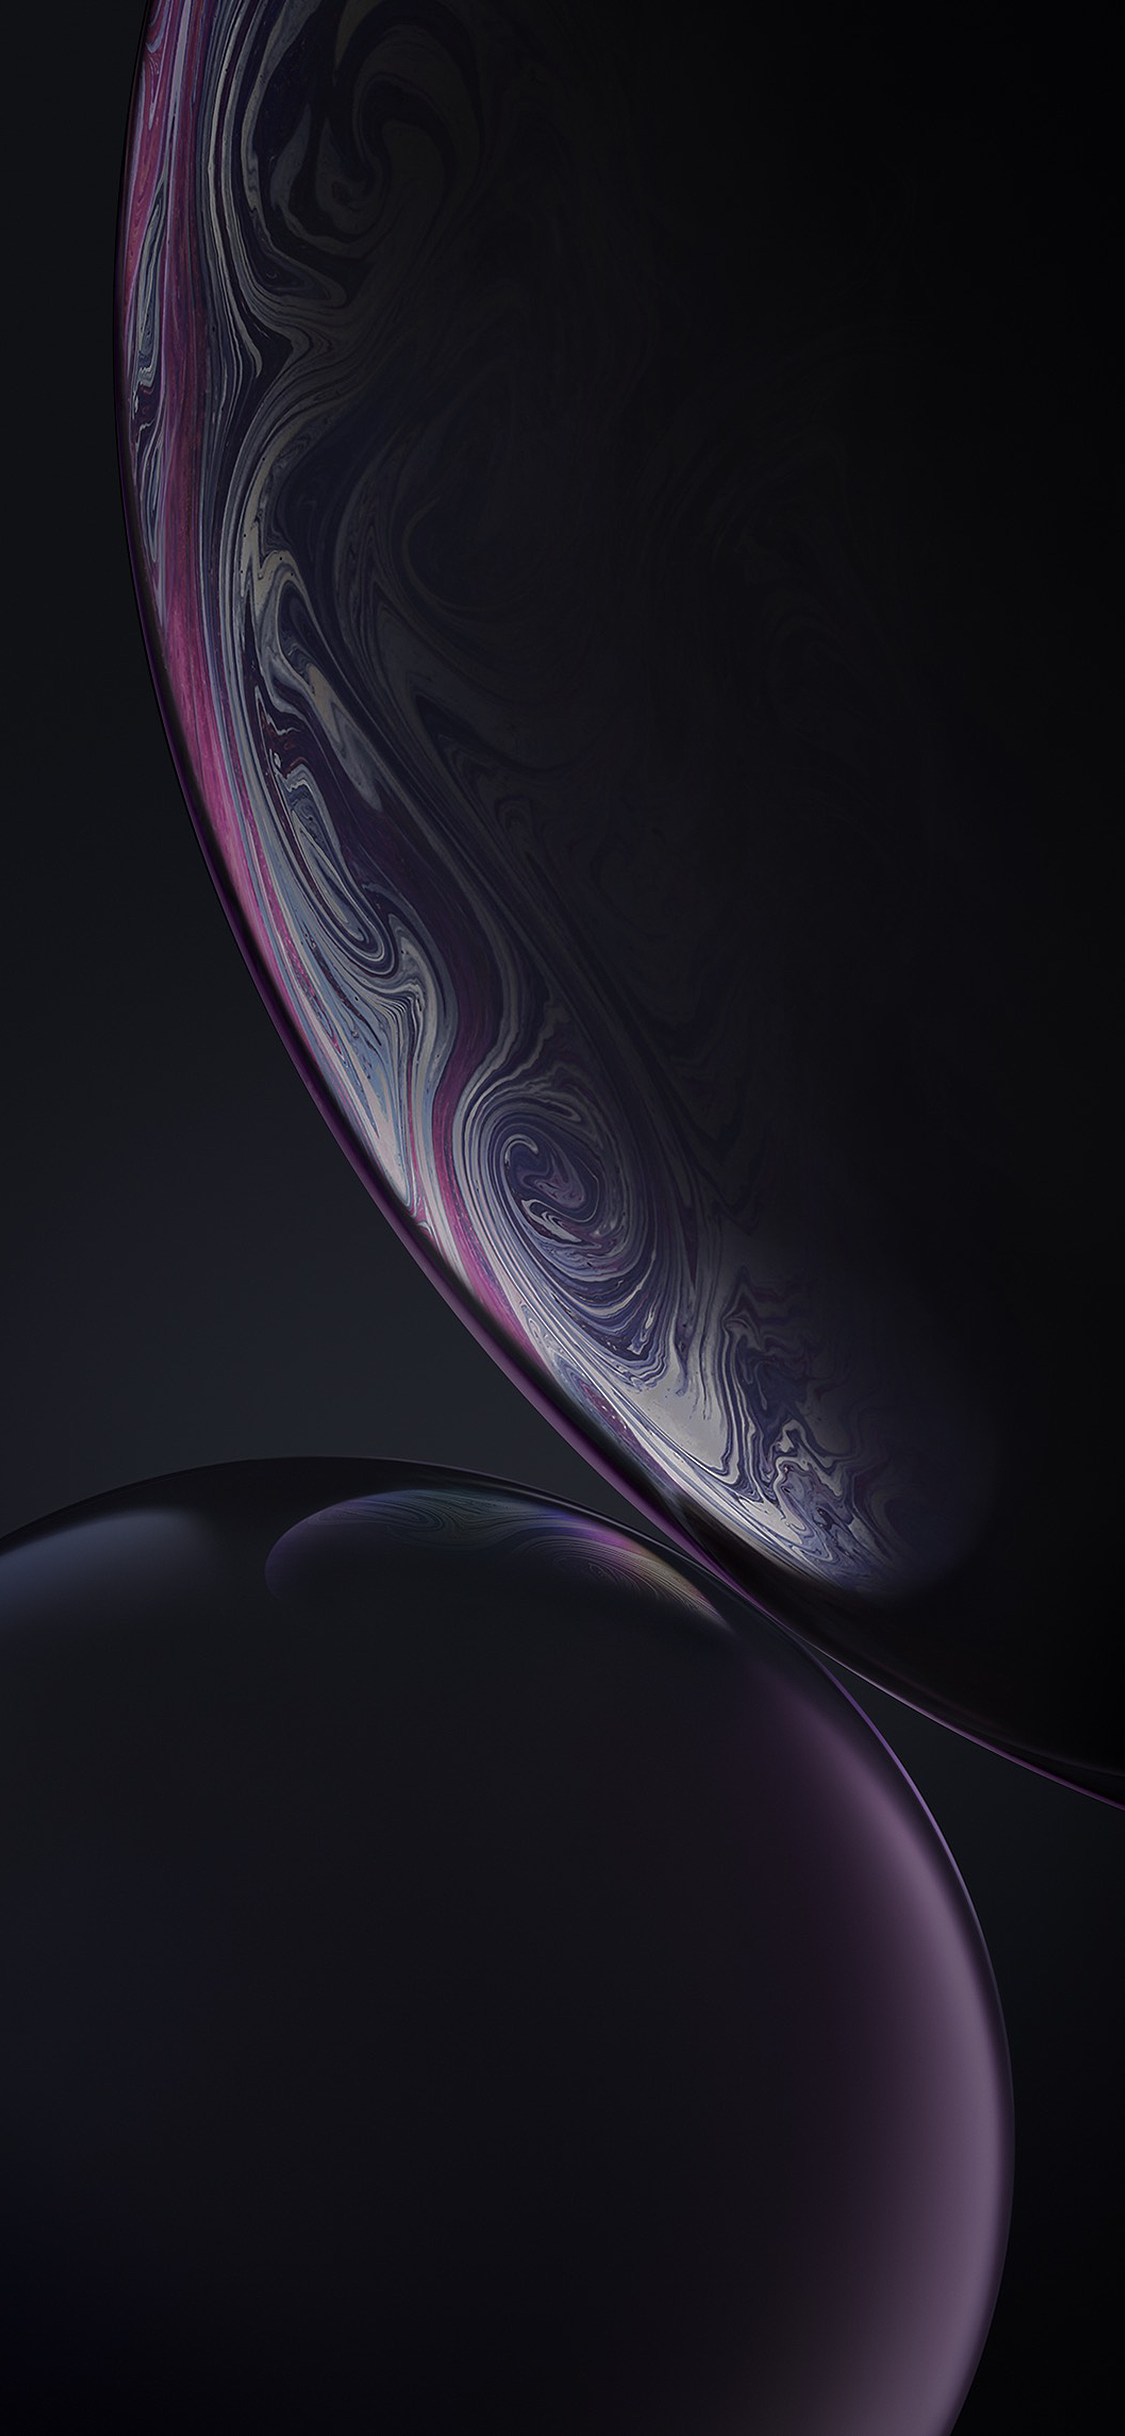 Iphone Xs Wallpapers Top Free Iphone Xs Backgrounds